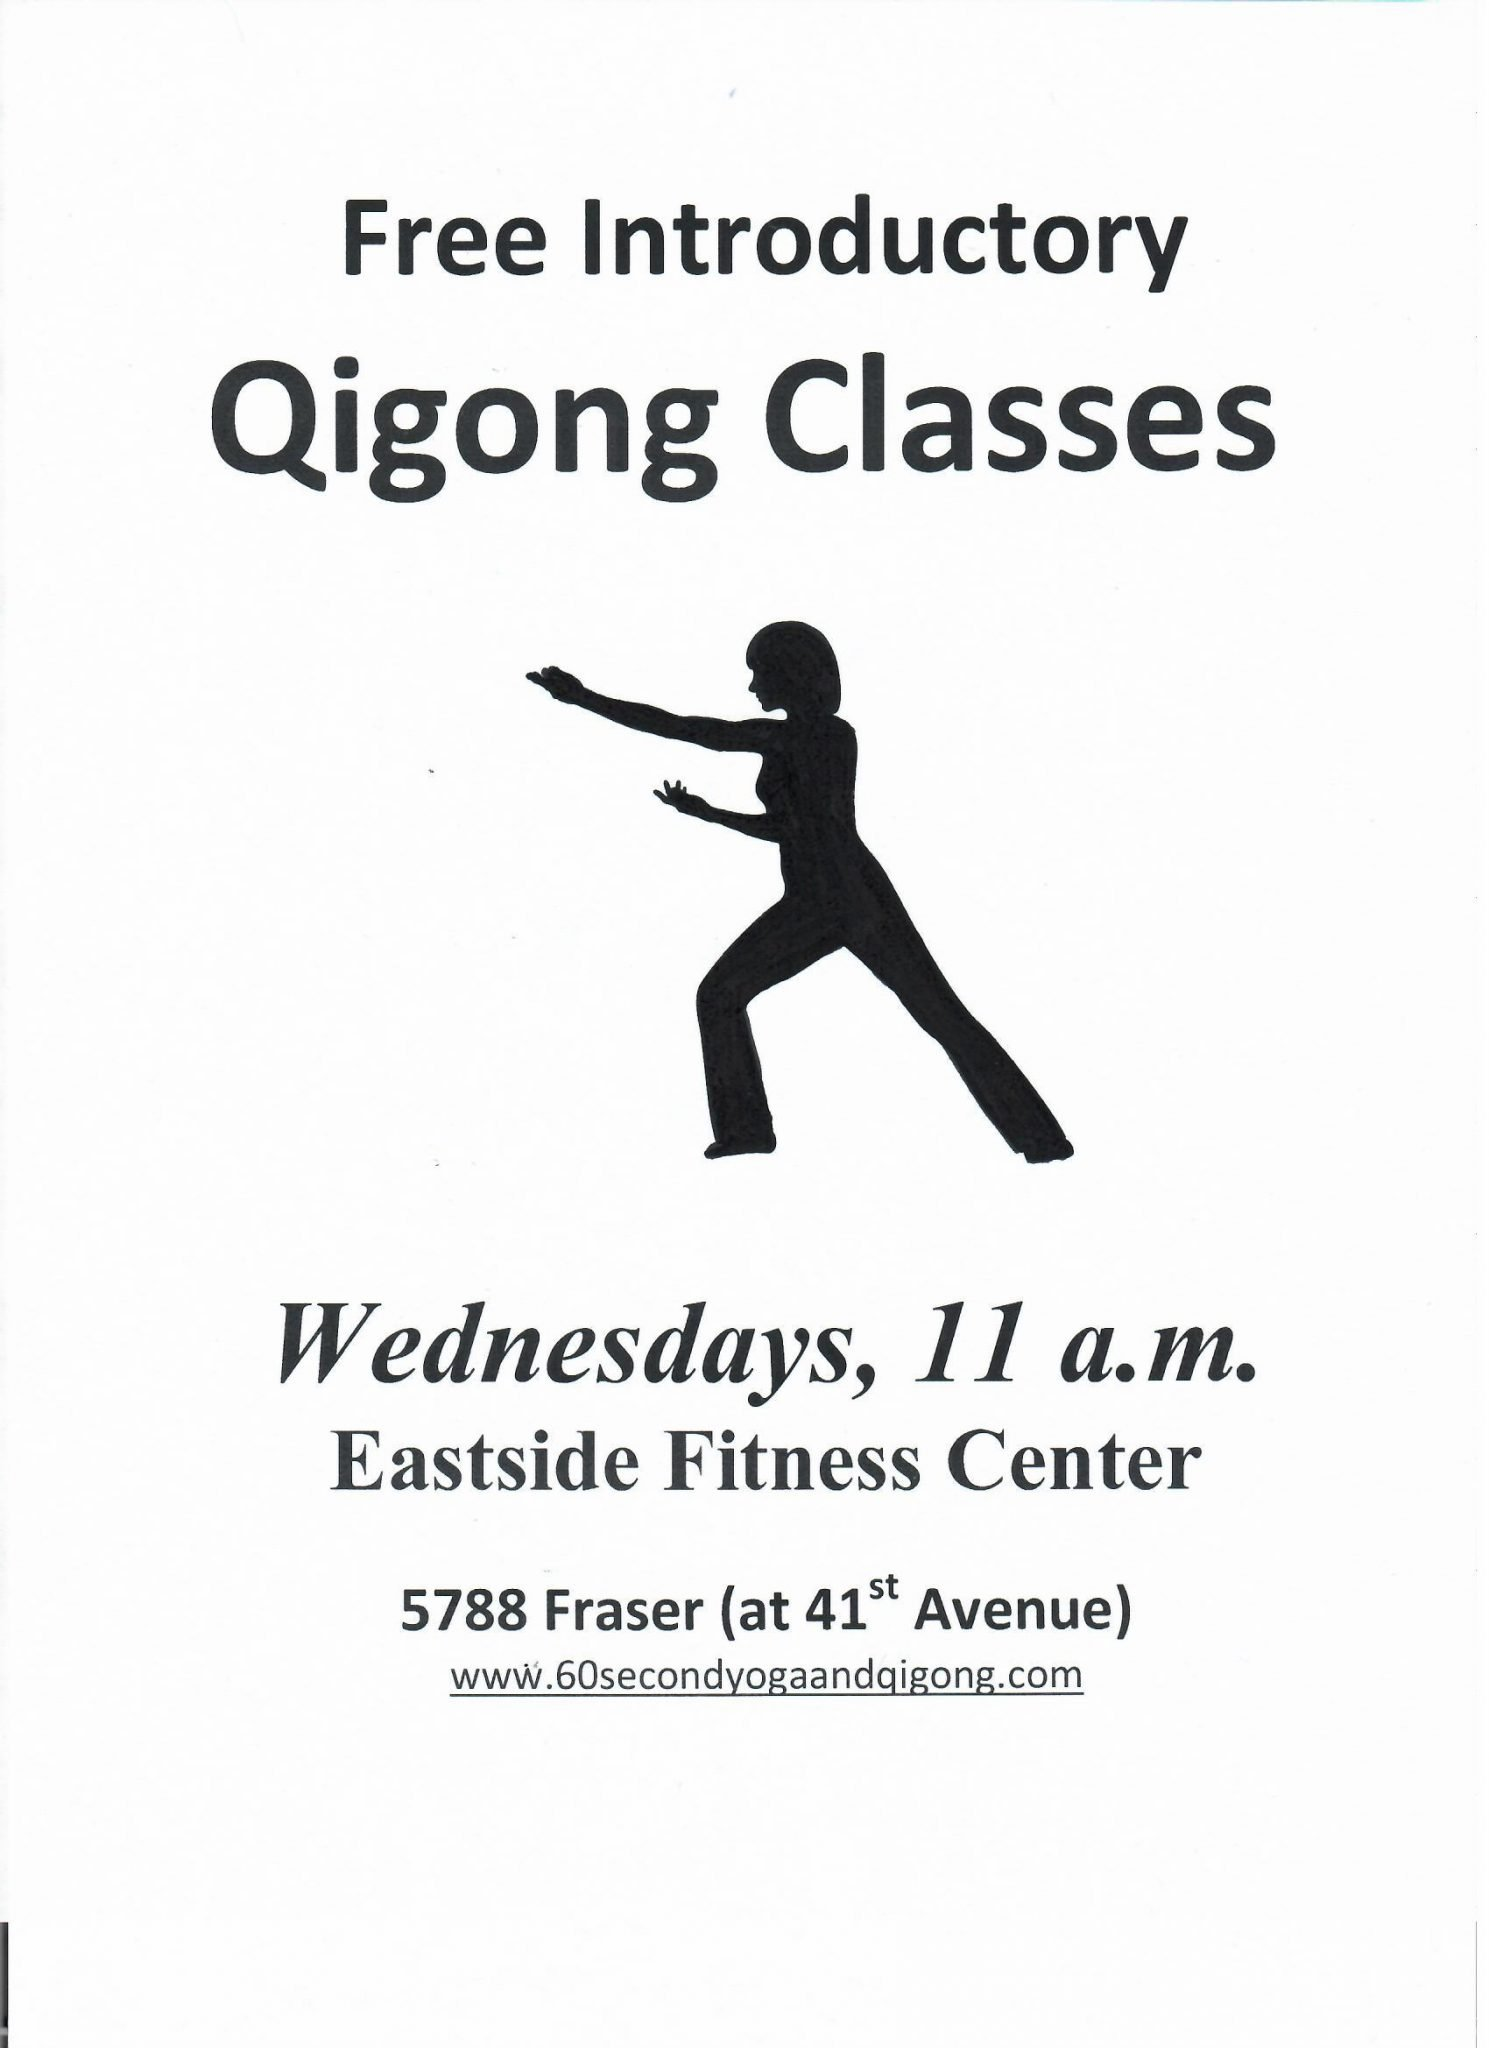 Free Introductory Qigong Sessions